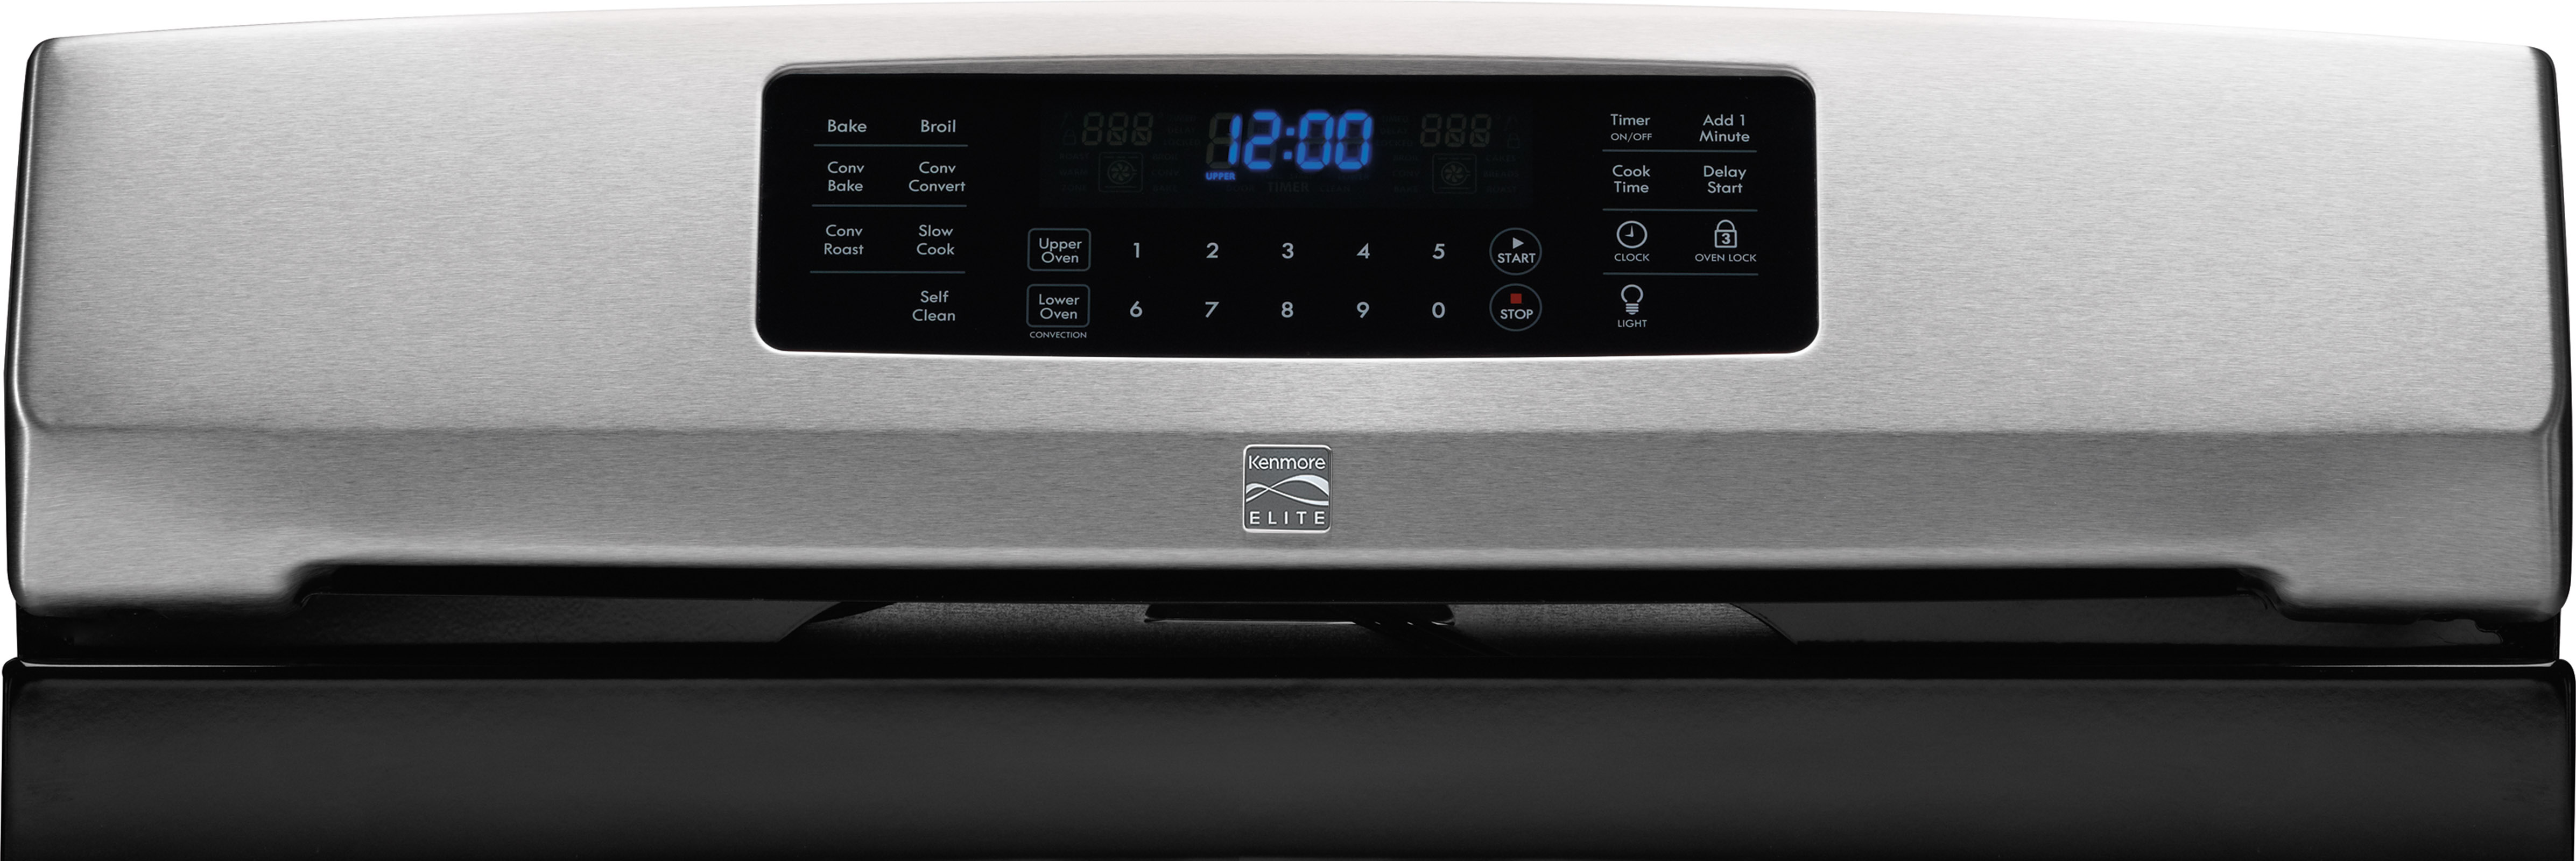 Kenmore Elite 75423 5.9 cu. ft. Double-Oven Gas Range - Stainless w/ Black Top